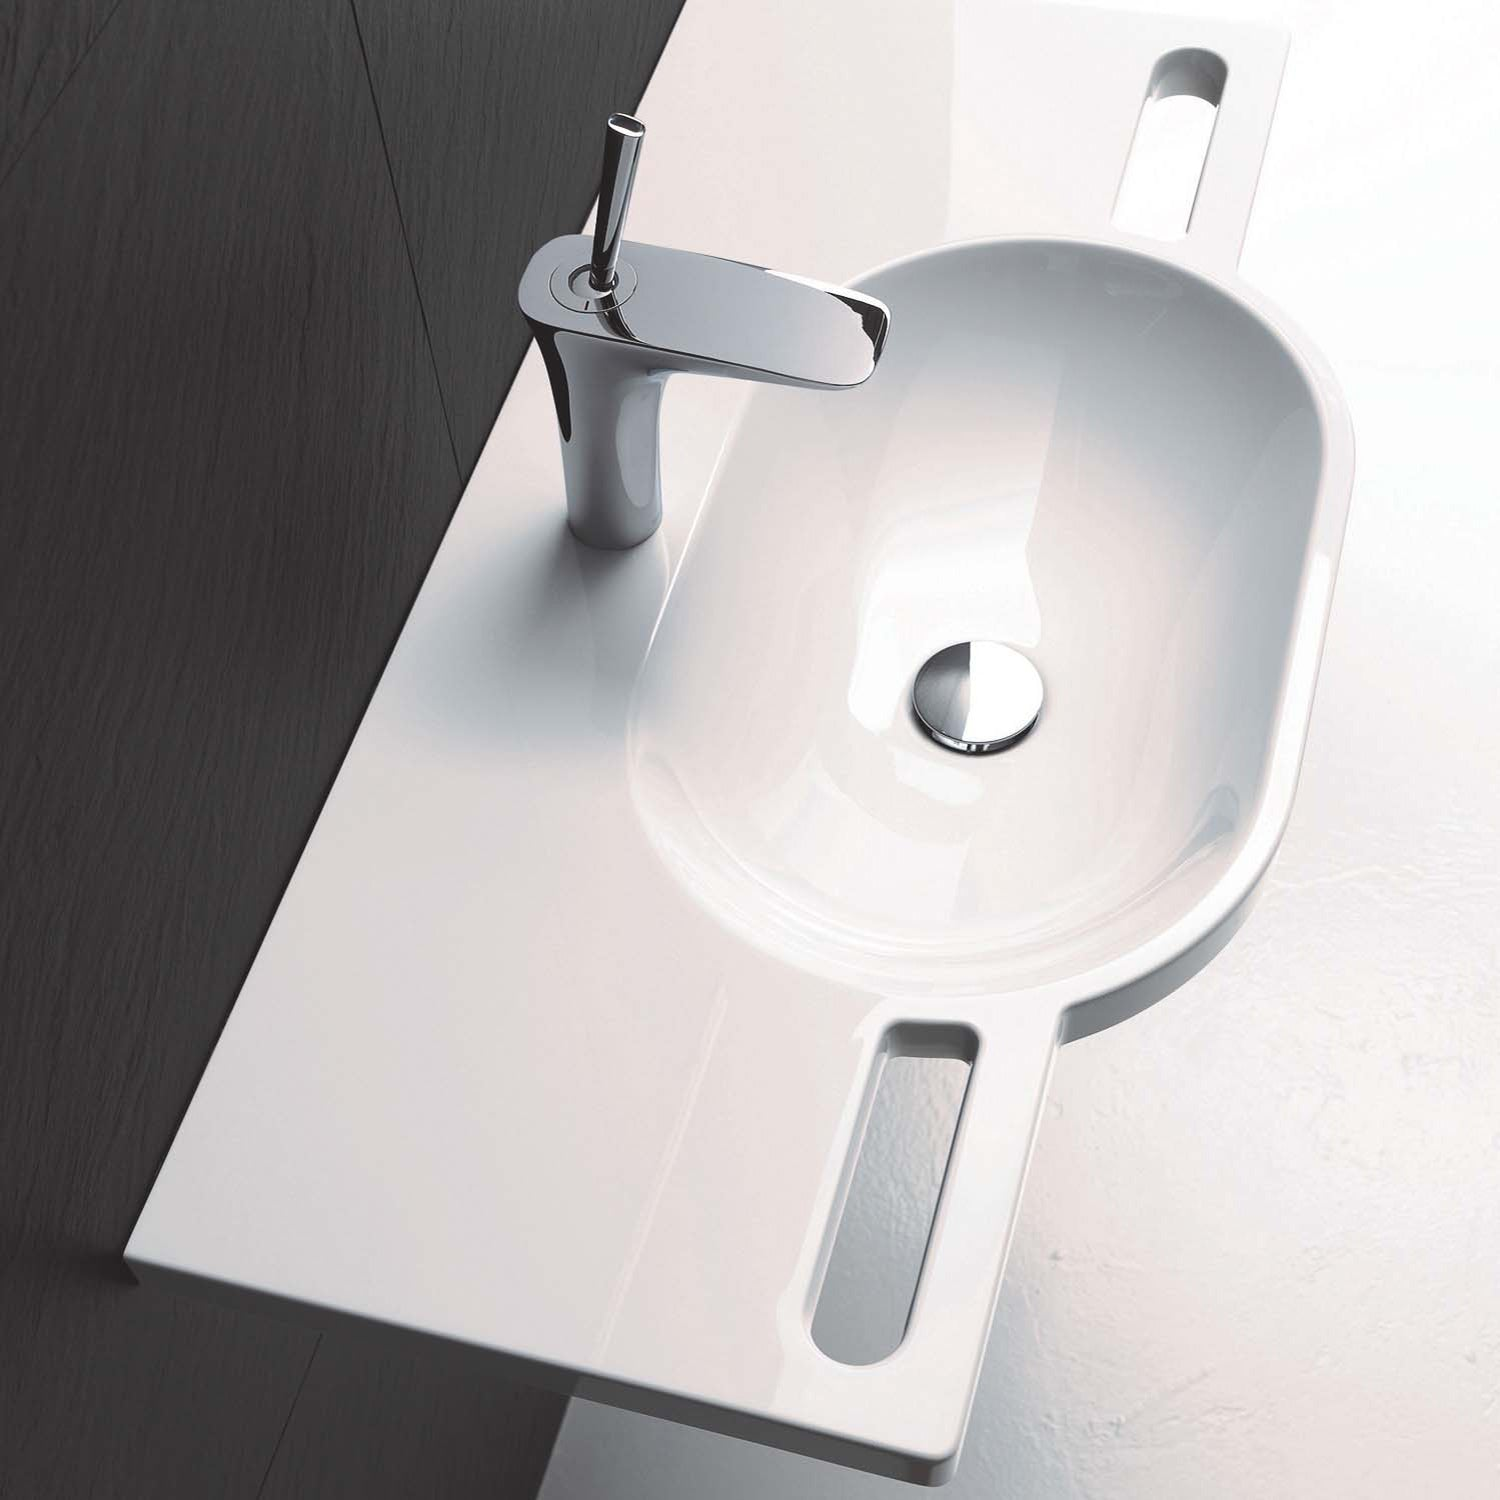 850mm SurfaceHold Wall Hung Long Oval Basin with no tap hole lifestyle image